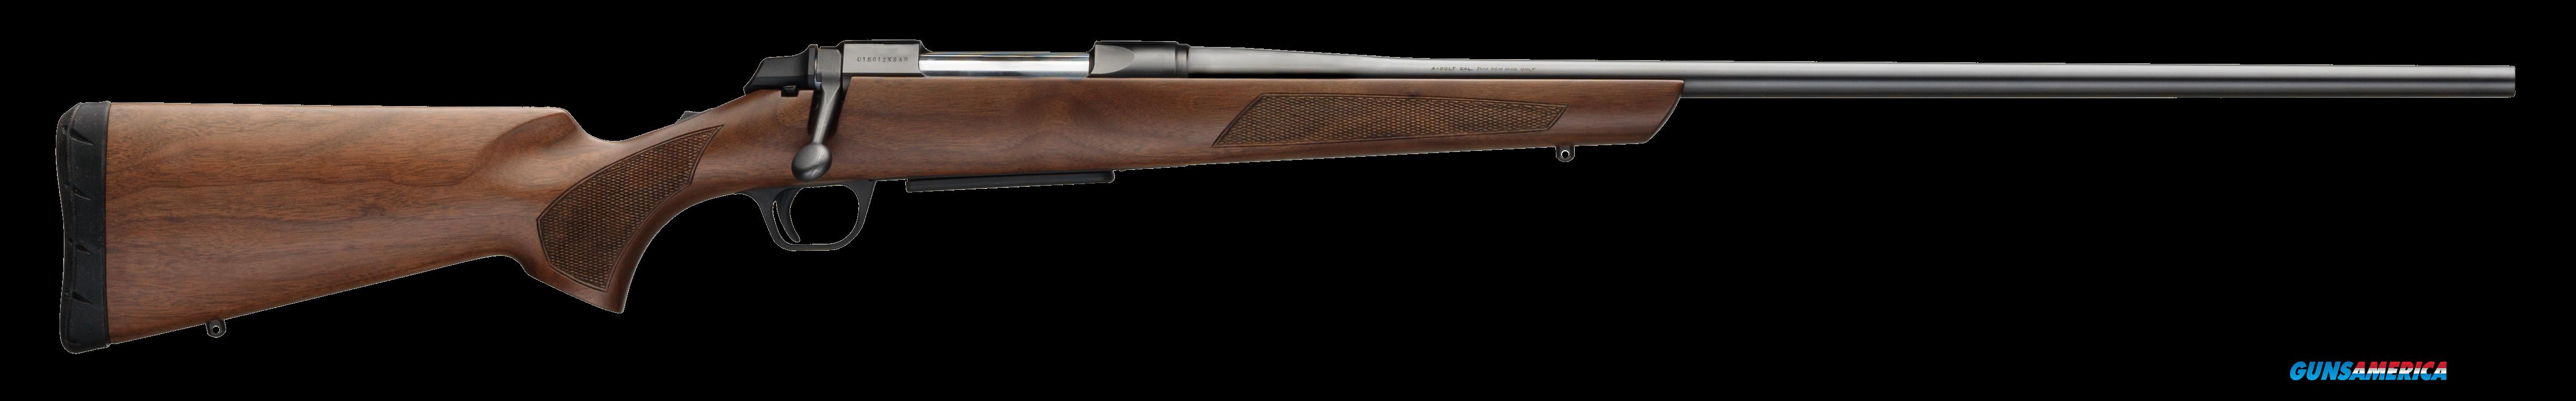 "Browning 035801246 AB3 Hunter Bolt 300 Winchester Short Magnum 23"" 3+1 Black Walnut Stock Blued  Guns > Rifles > B Misc Rifles"